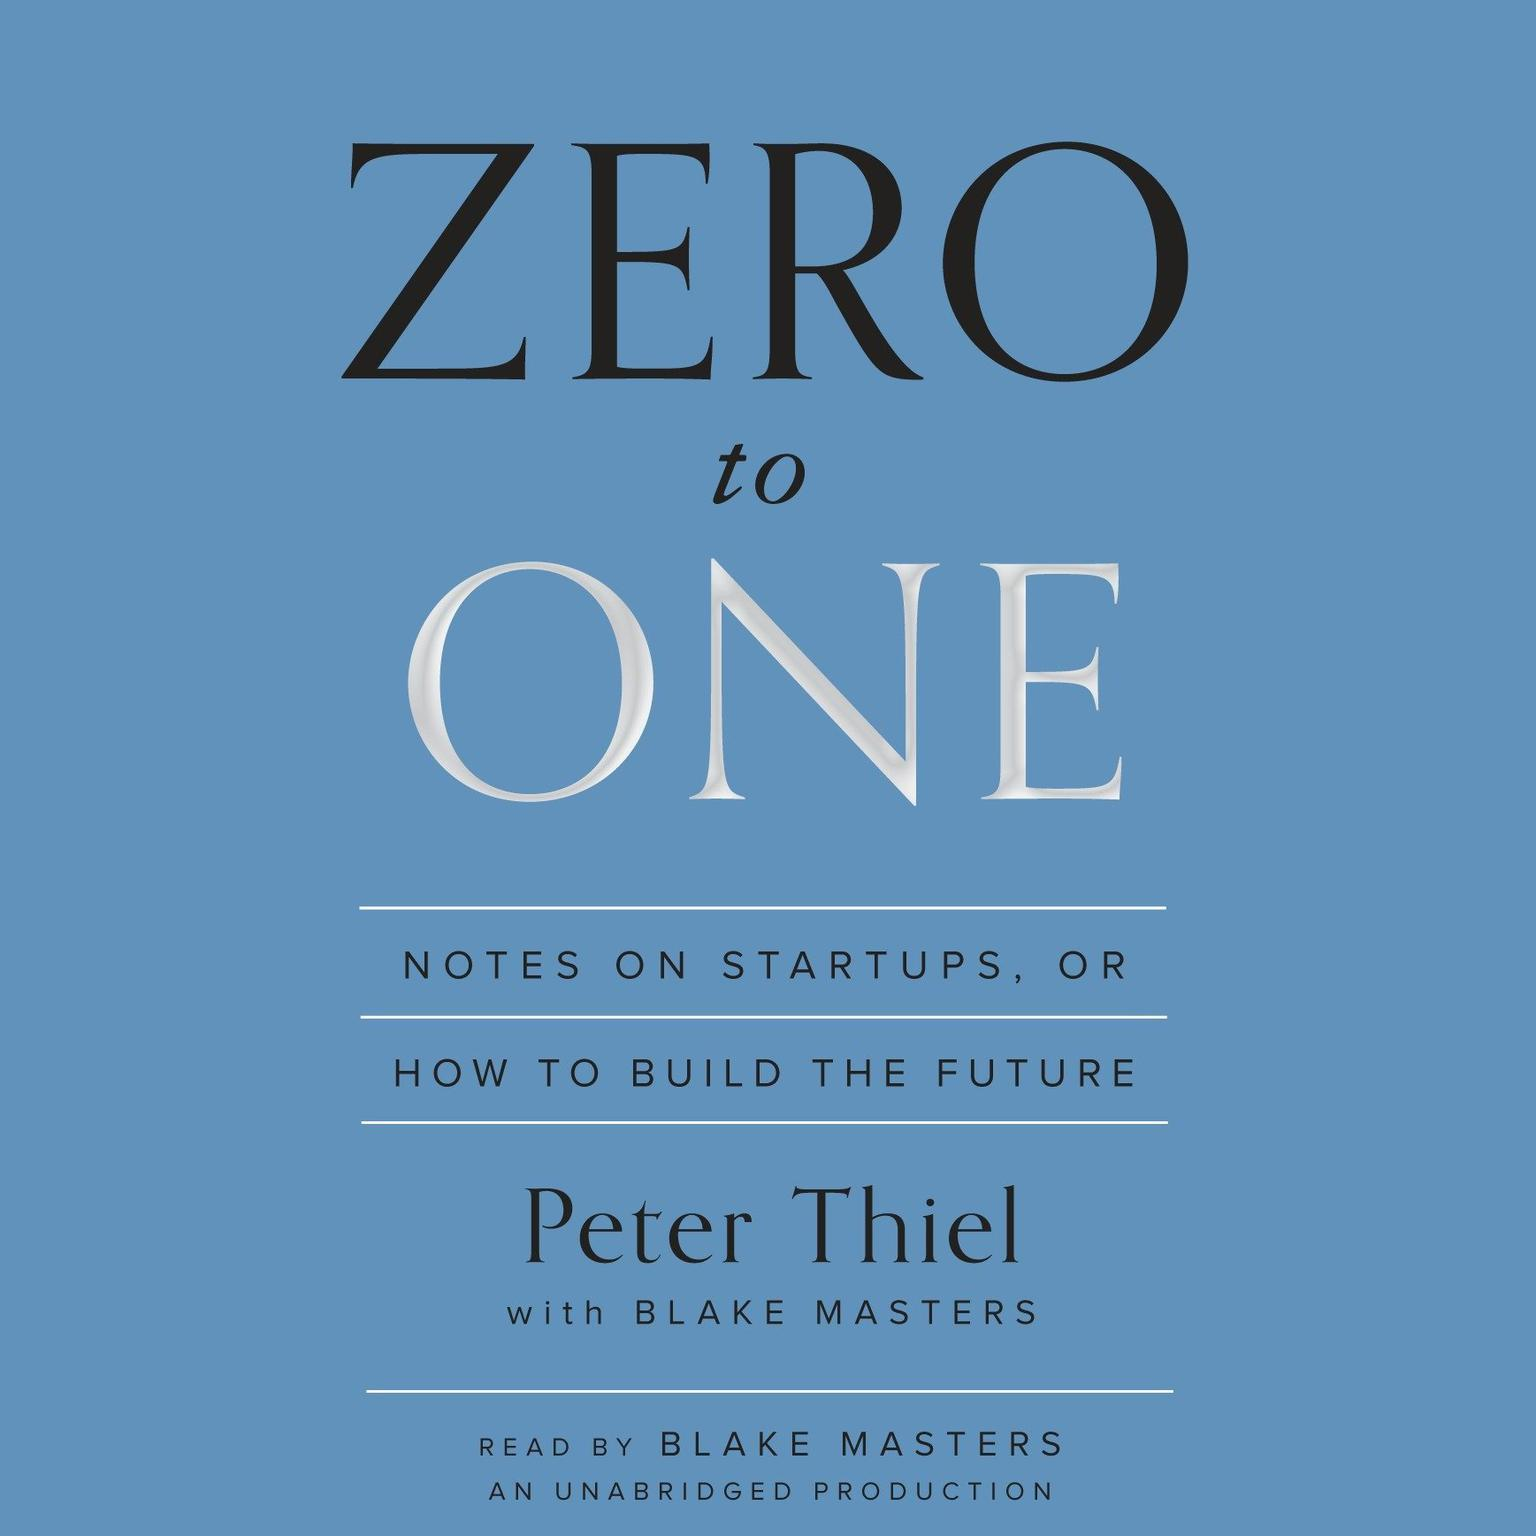 Printable Zero to One: How to Build the Future, or Notes on Start-ups Audiobook Cover Art